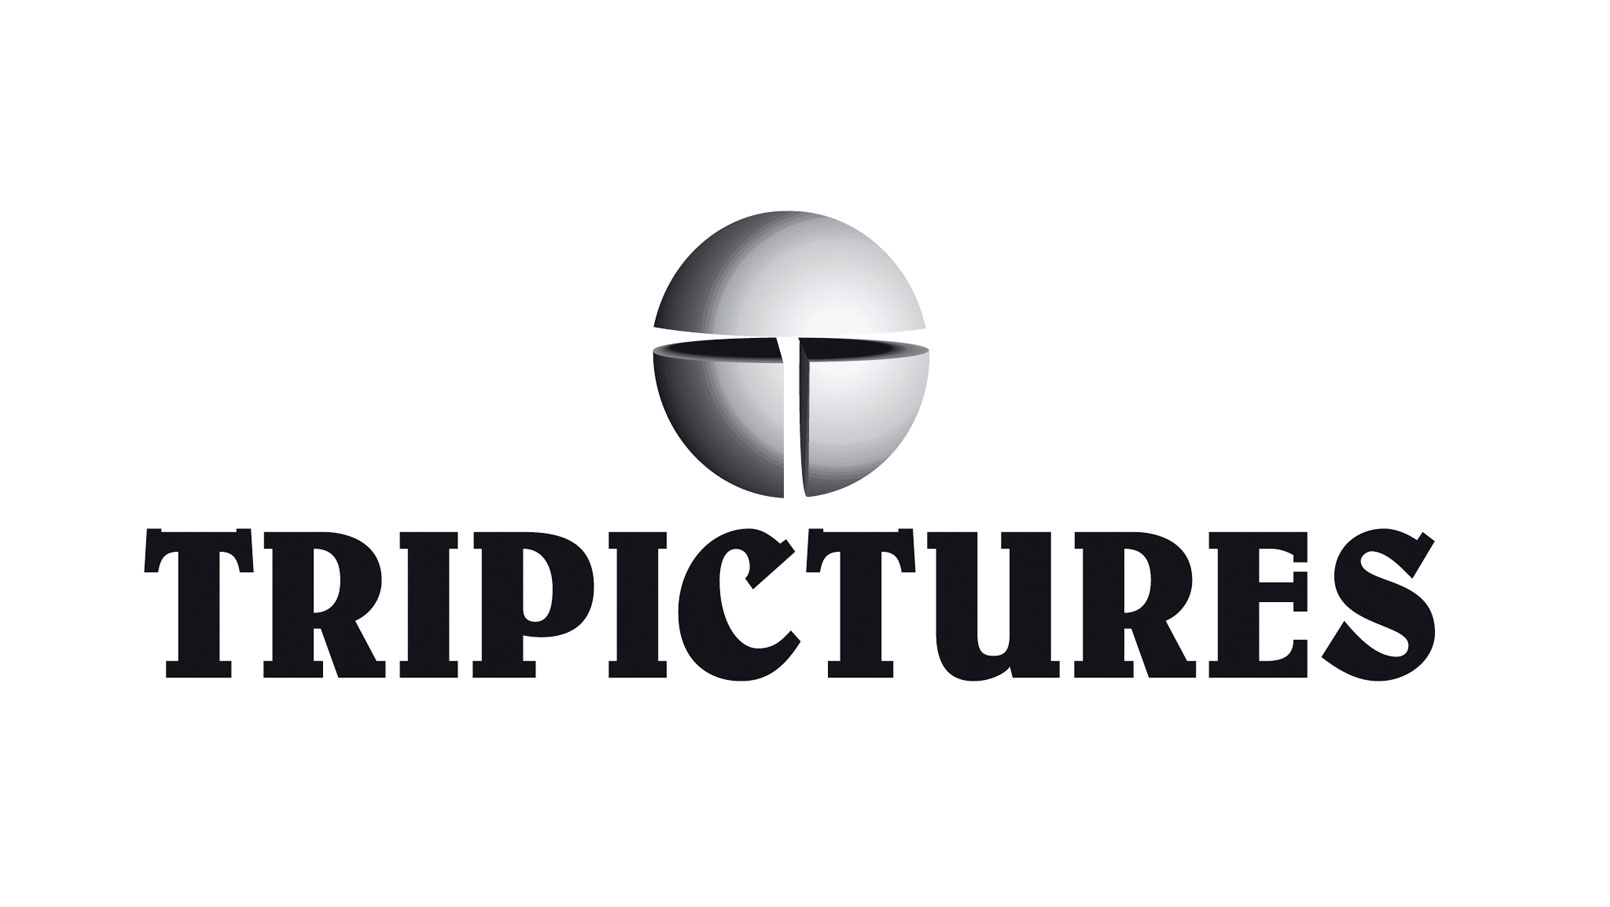 Tripictures